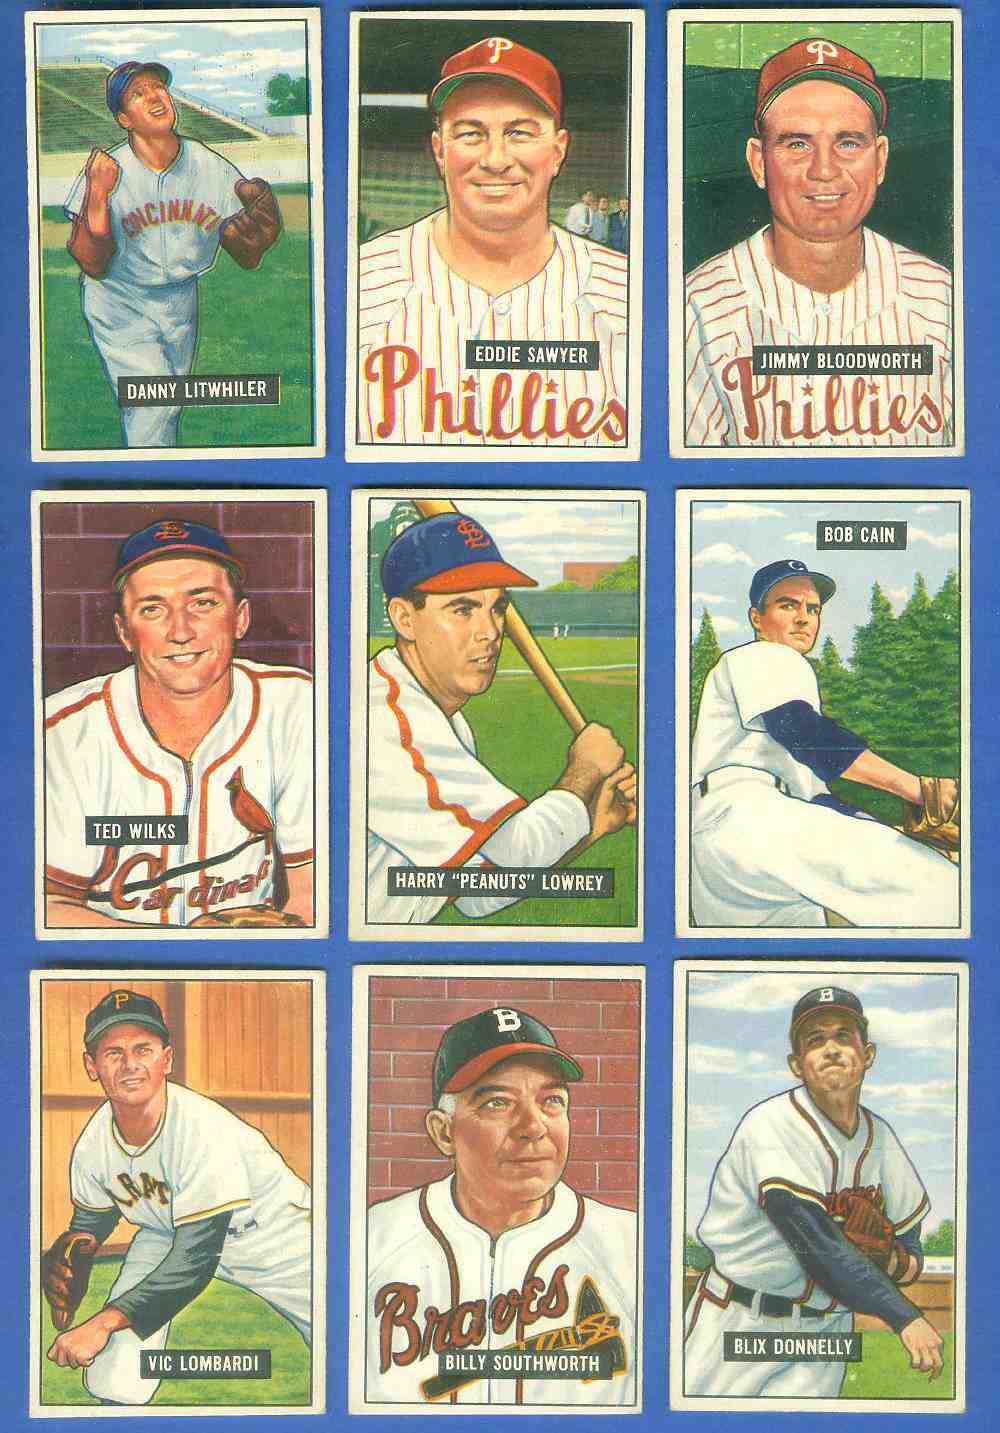 1951 Bowman #194 Peanuts Lowrey (Cardinals) Baseball cards value